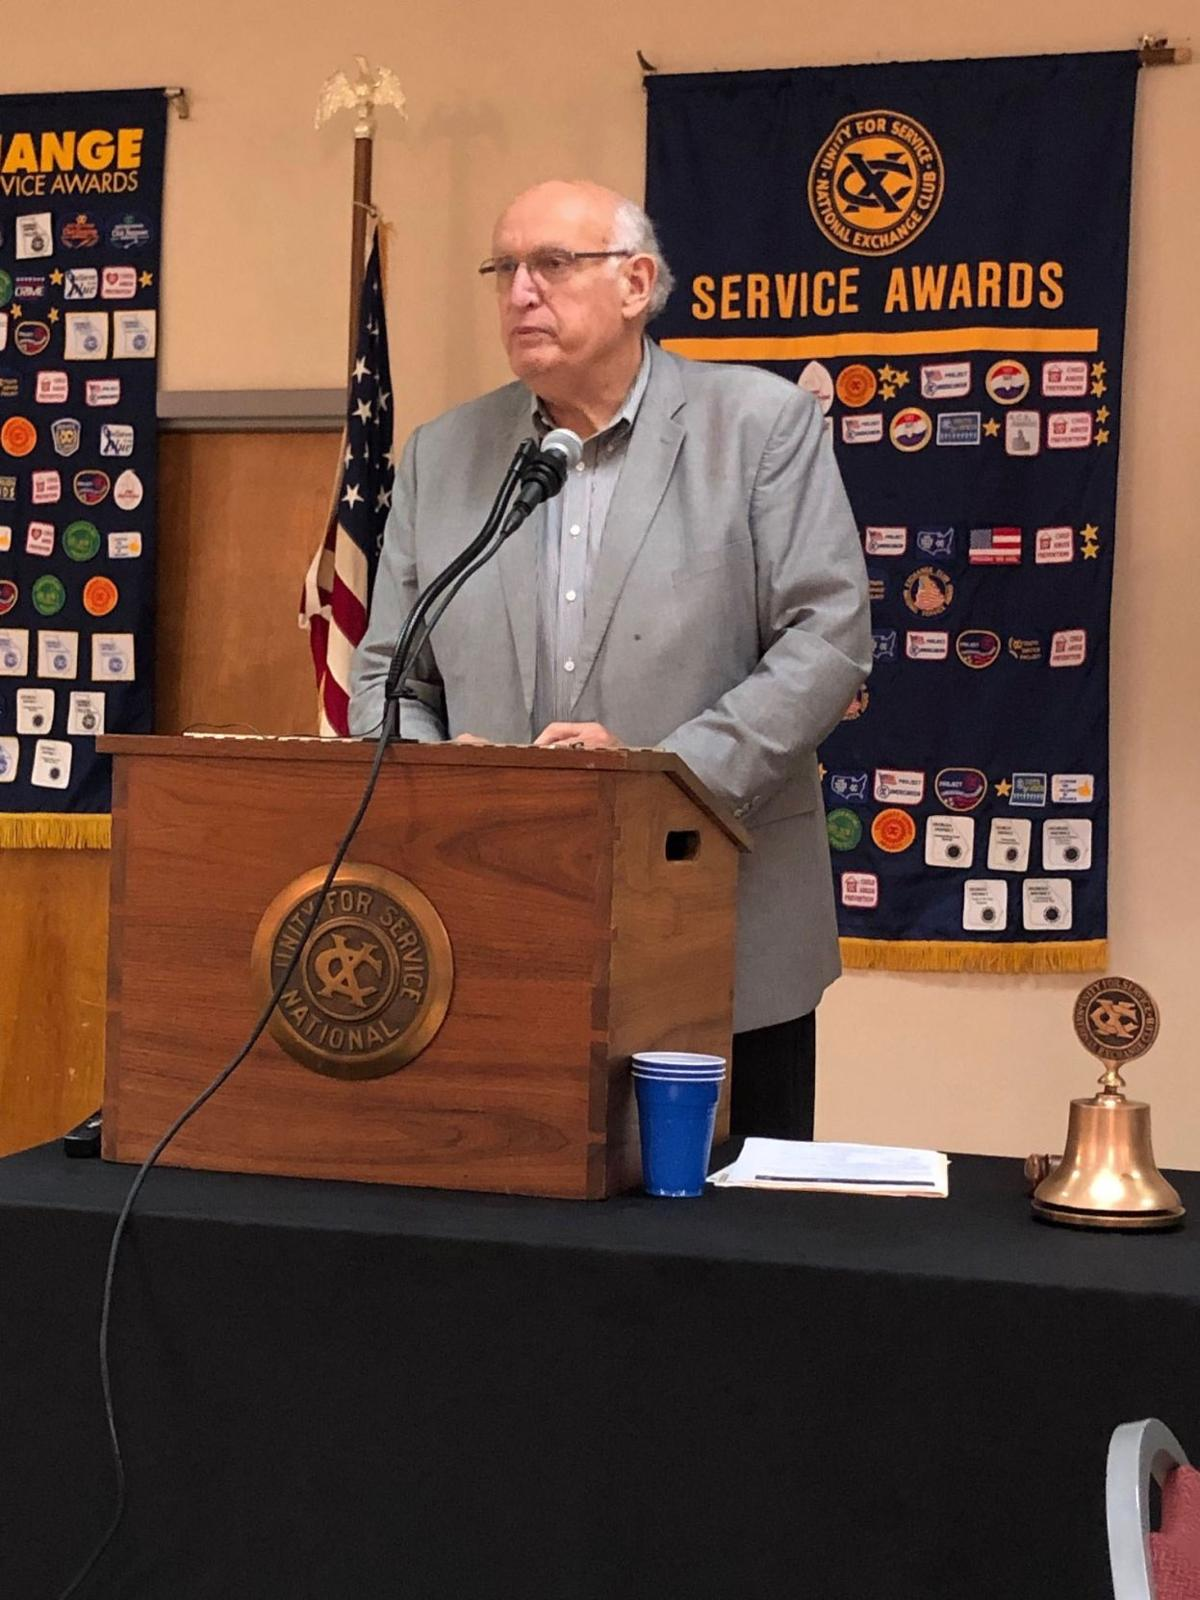 Former sheriff shares stories of life with Exchange Club